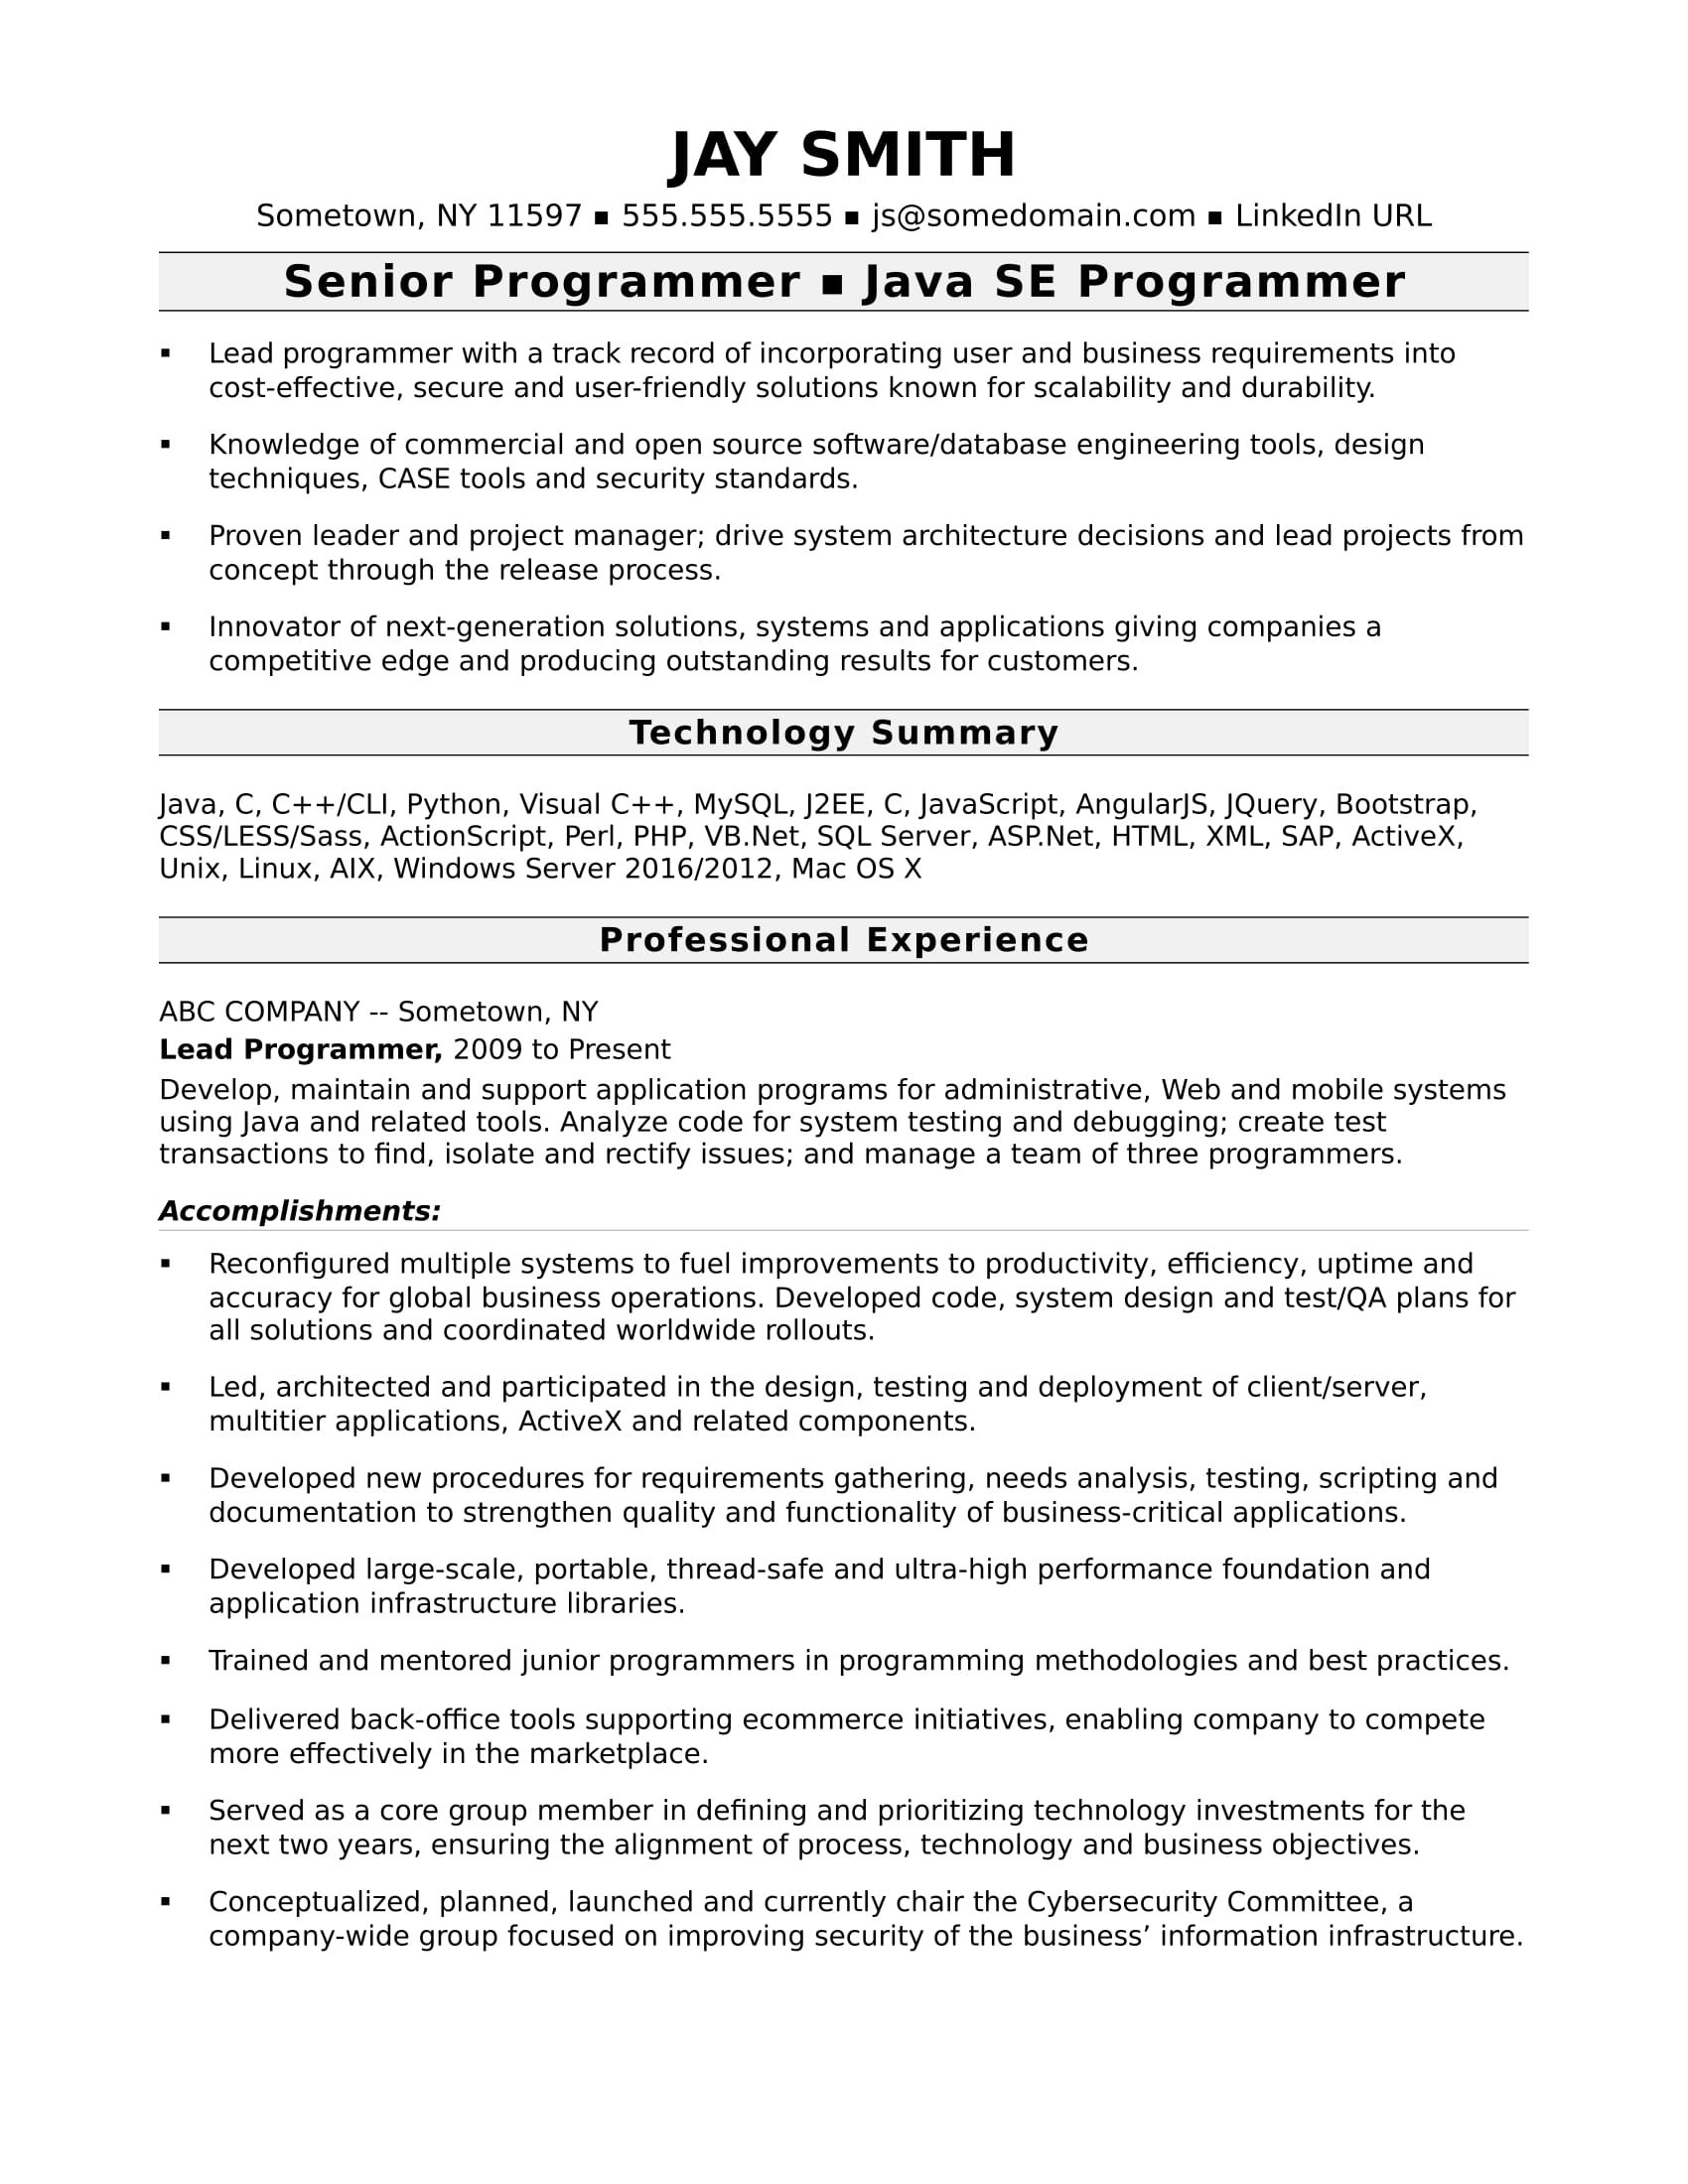 Resume Layout Examples Sample Resume For An Experienced Computer Programmer Monster